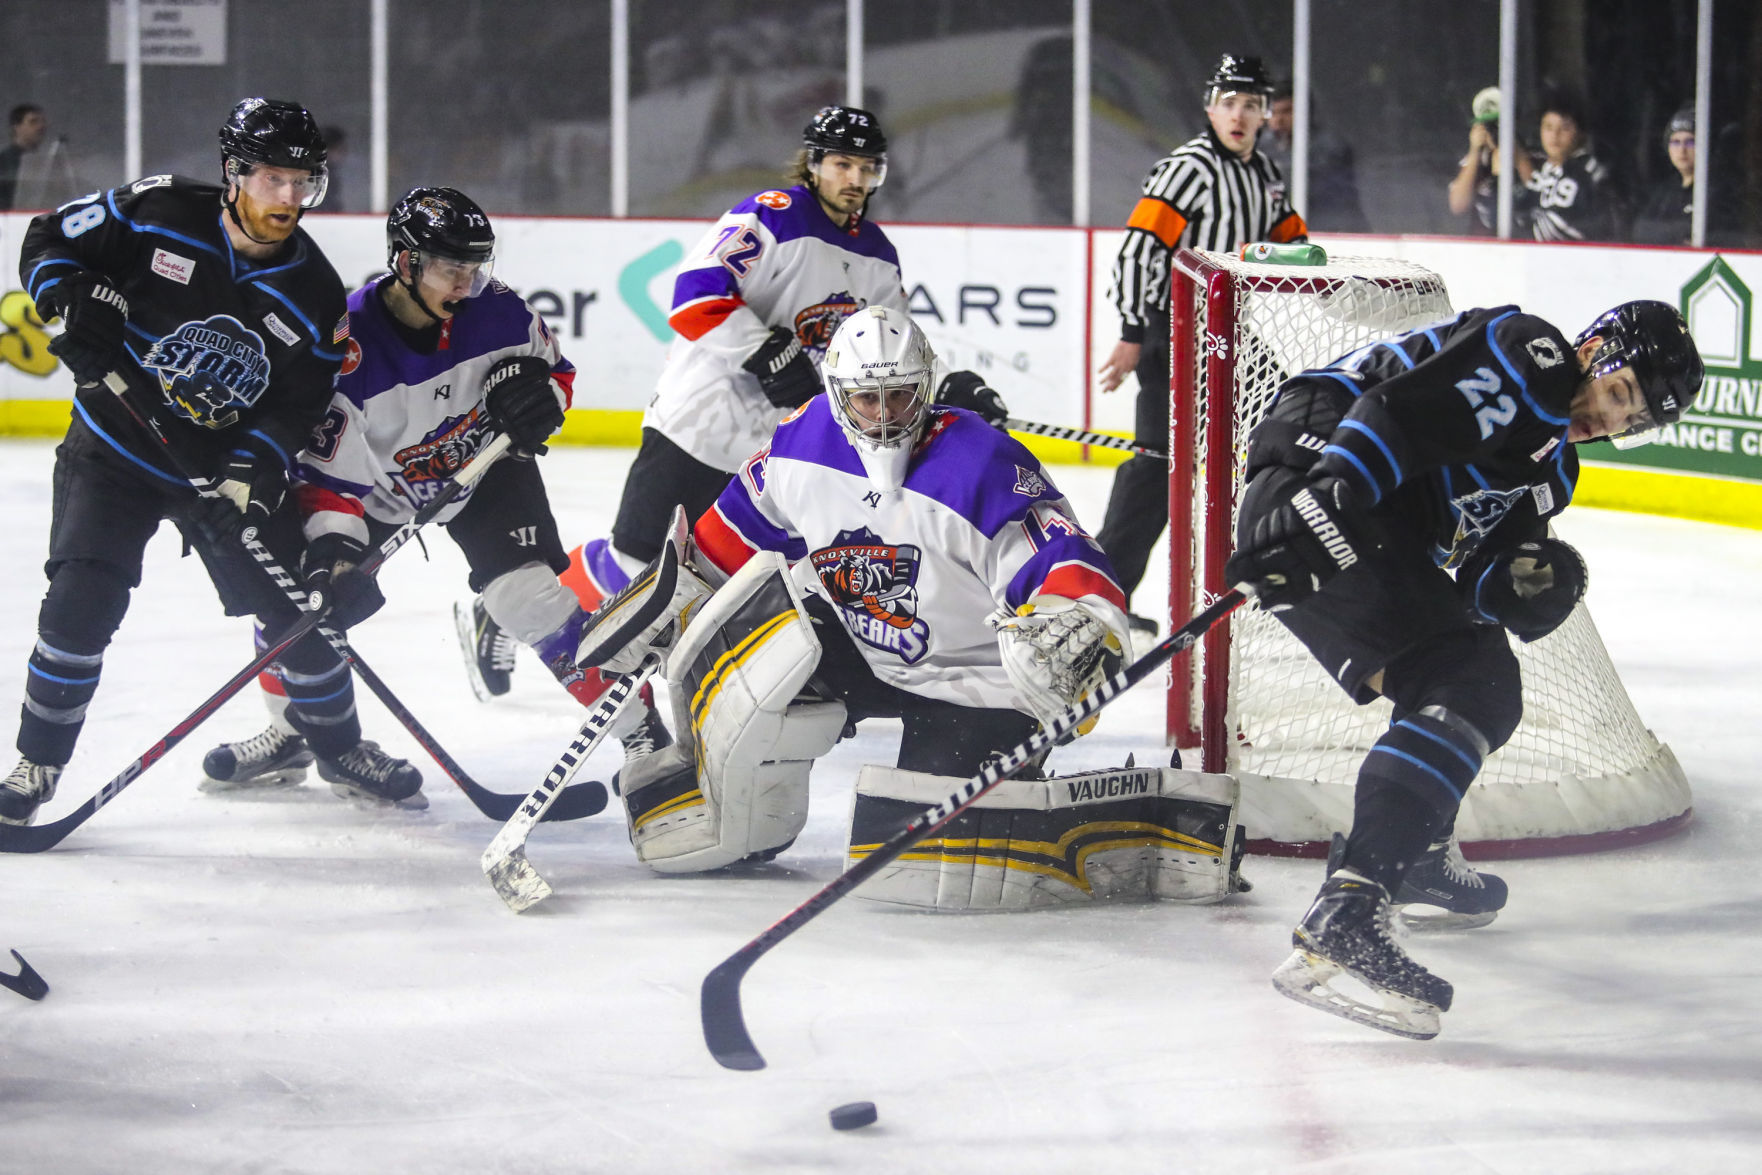 SPHL: After Up-and-down First Half, Storm Searching For Consistency